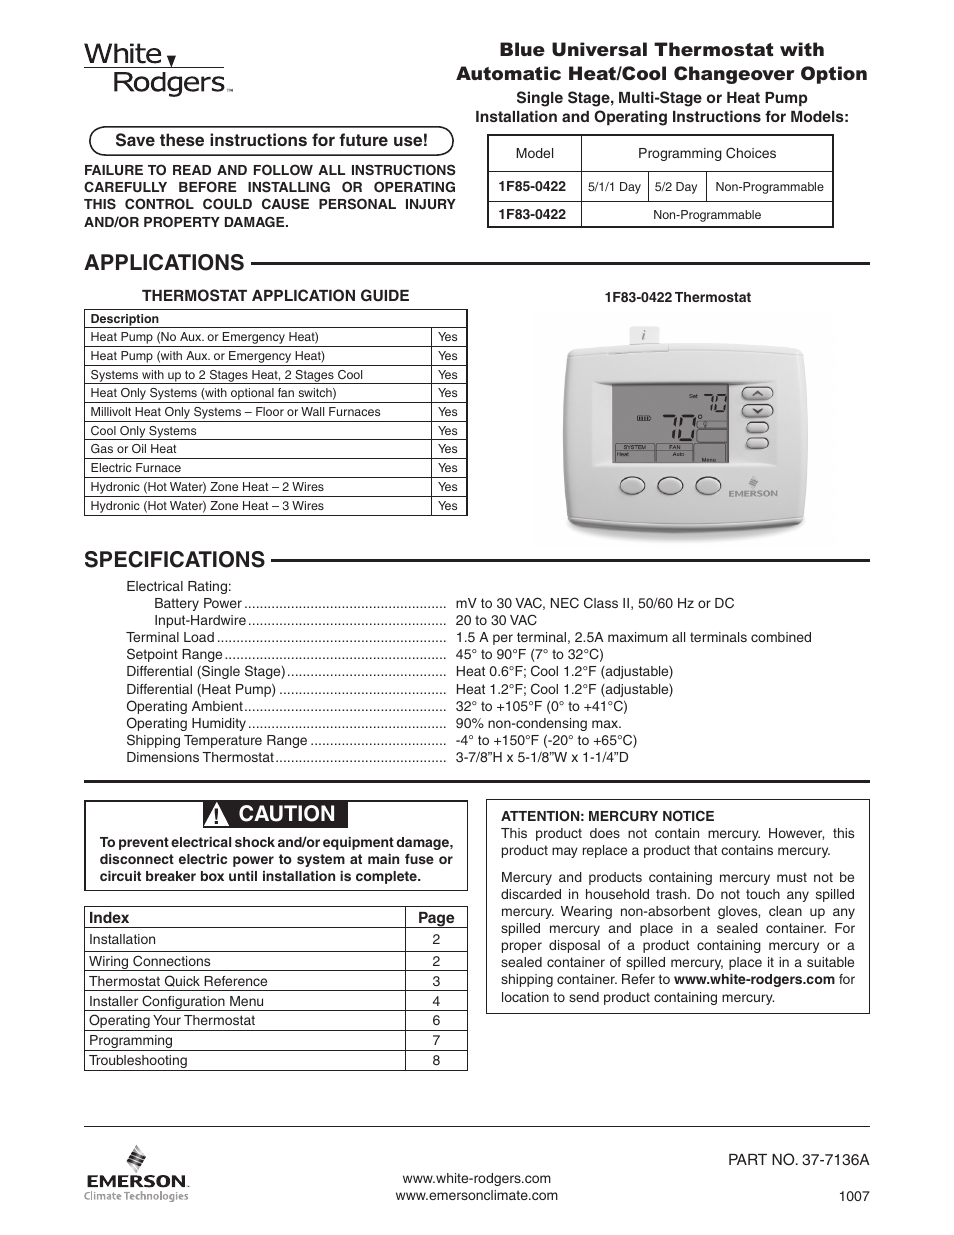 White Rodgers 1F85-0422 User Manual | 12 pages | Also for